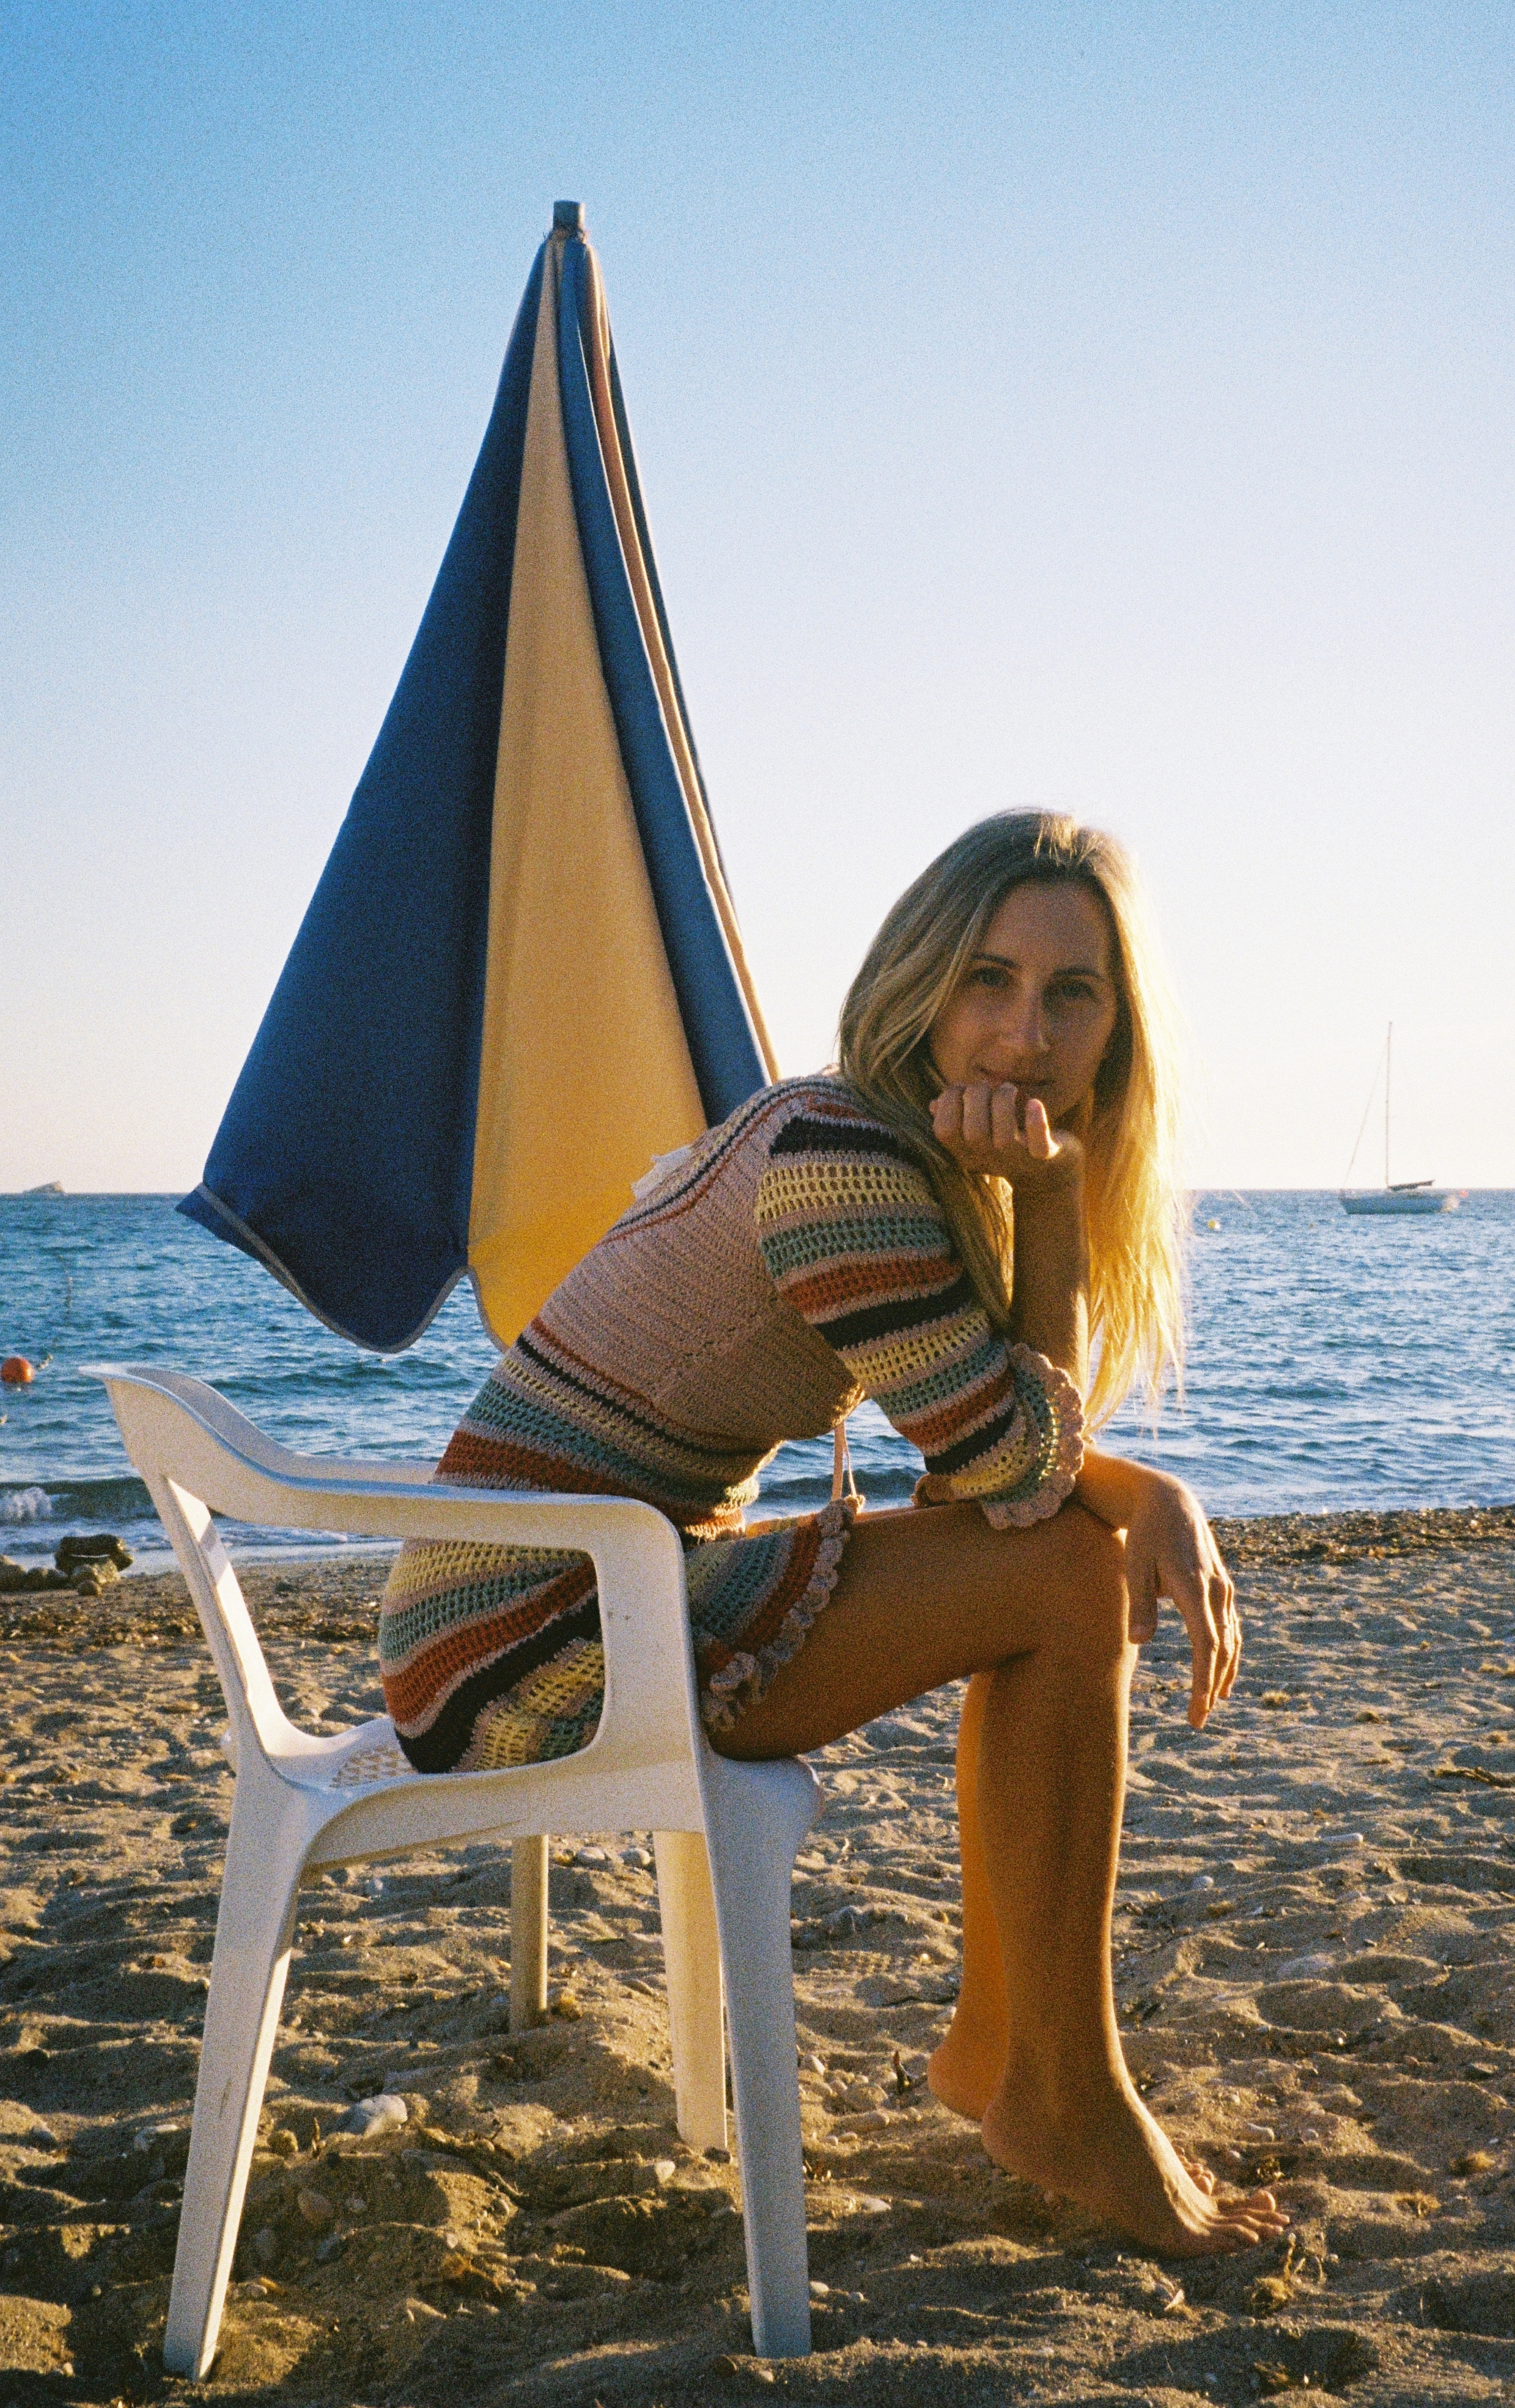 SHE_MADE_ME_CHLOE_DUNLOP_IBIZA_BOHEMIAN_HOTEL_WEEKEND13.JPG